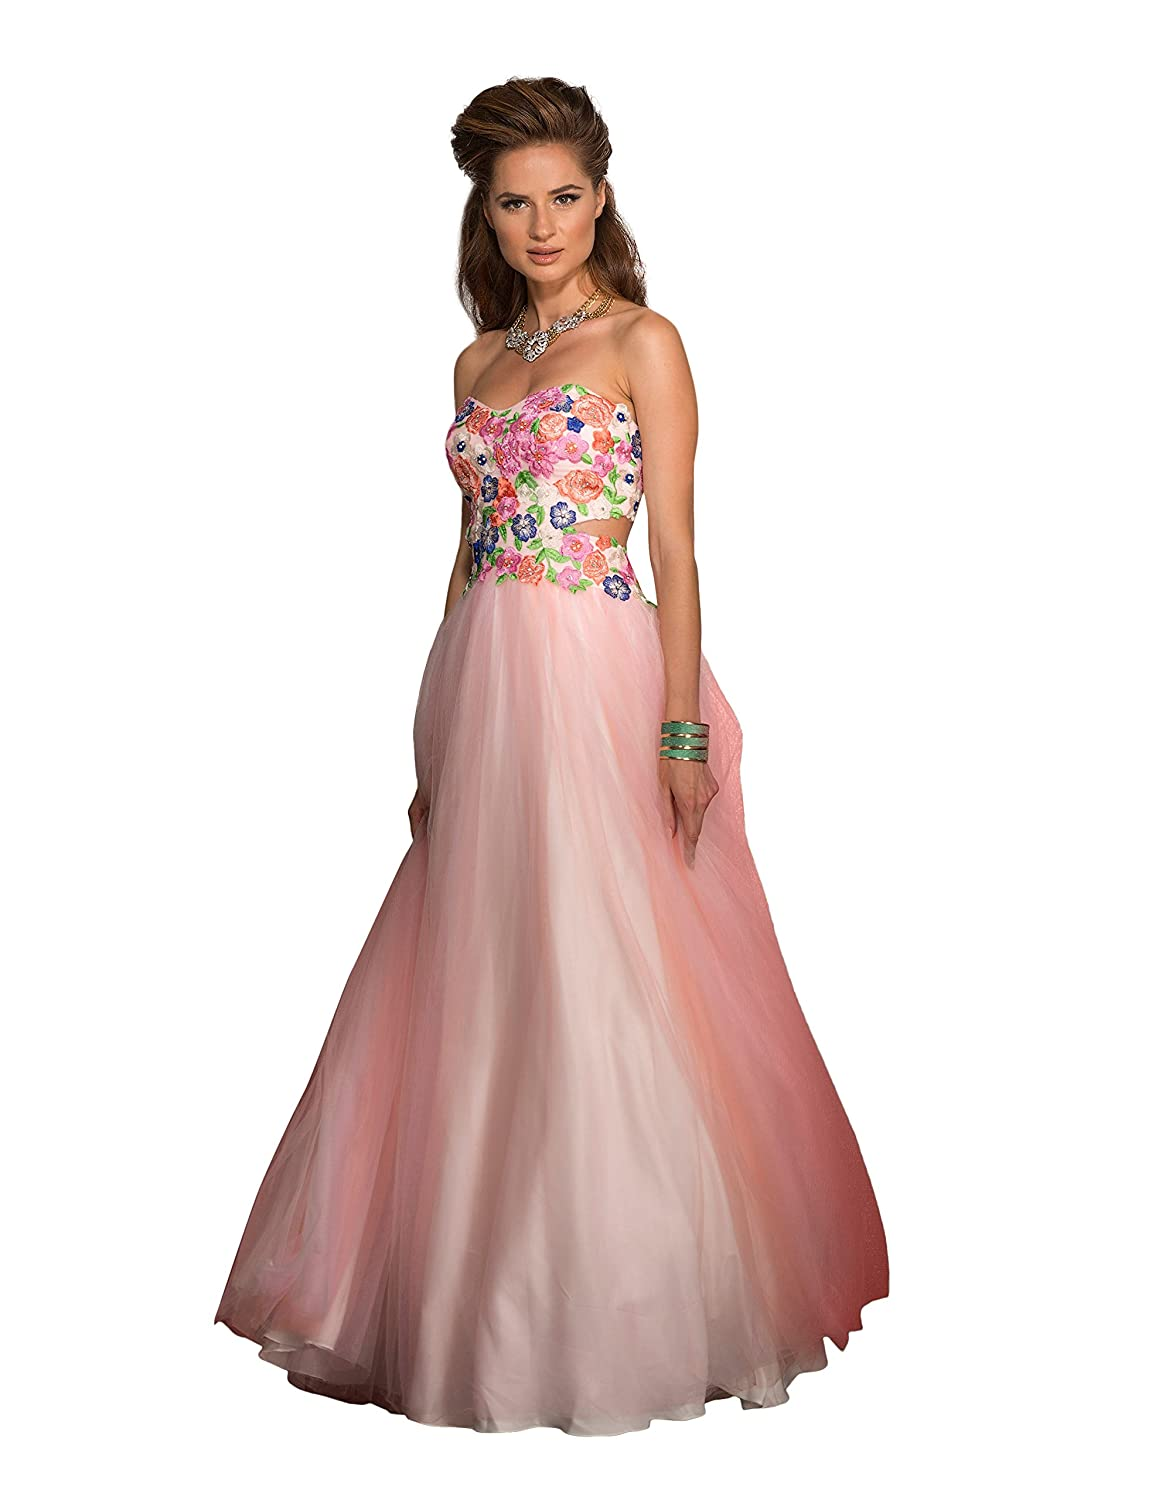 791b13c476 Amazon.com  Clarisse Women s Strapless Floral Ball Gown Prom Dress 2531 Size  0  Clothing